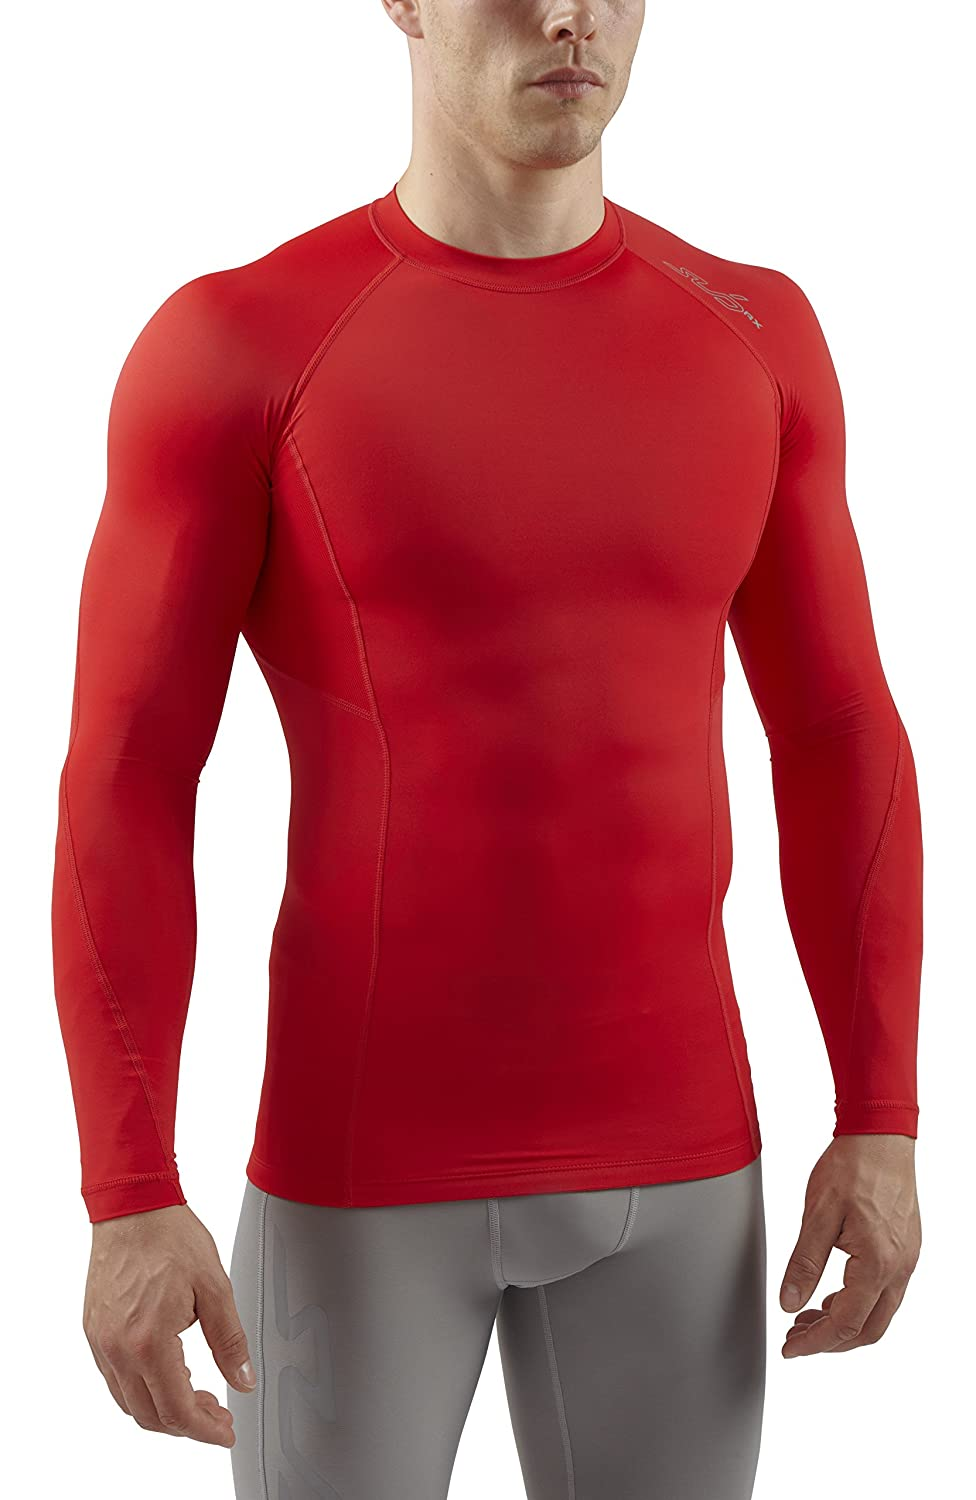 Sub Sports Womens Elite RX Graduated Compression Long Sleeve Base Layer Top